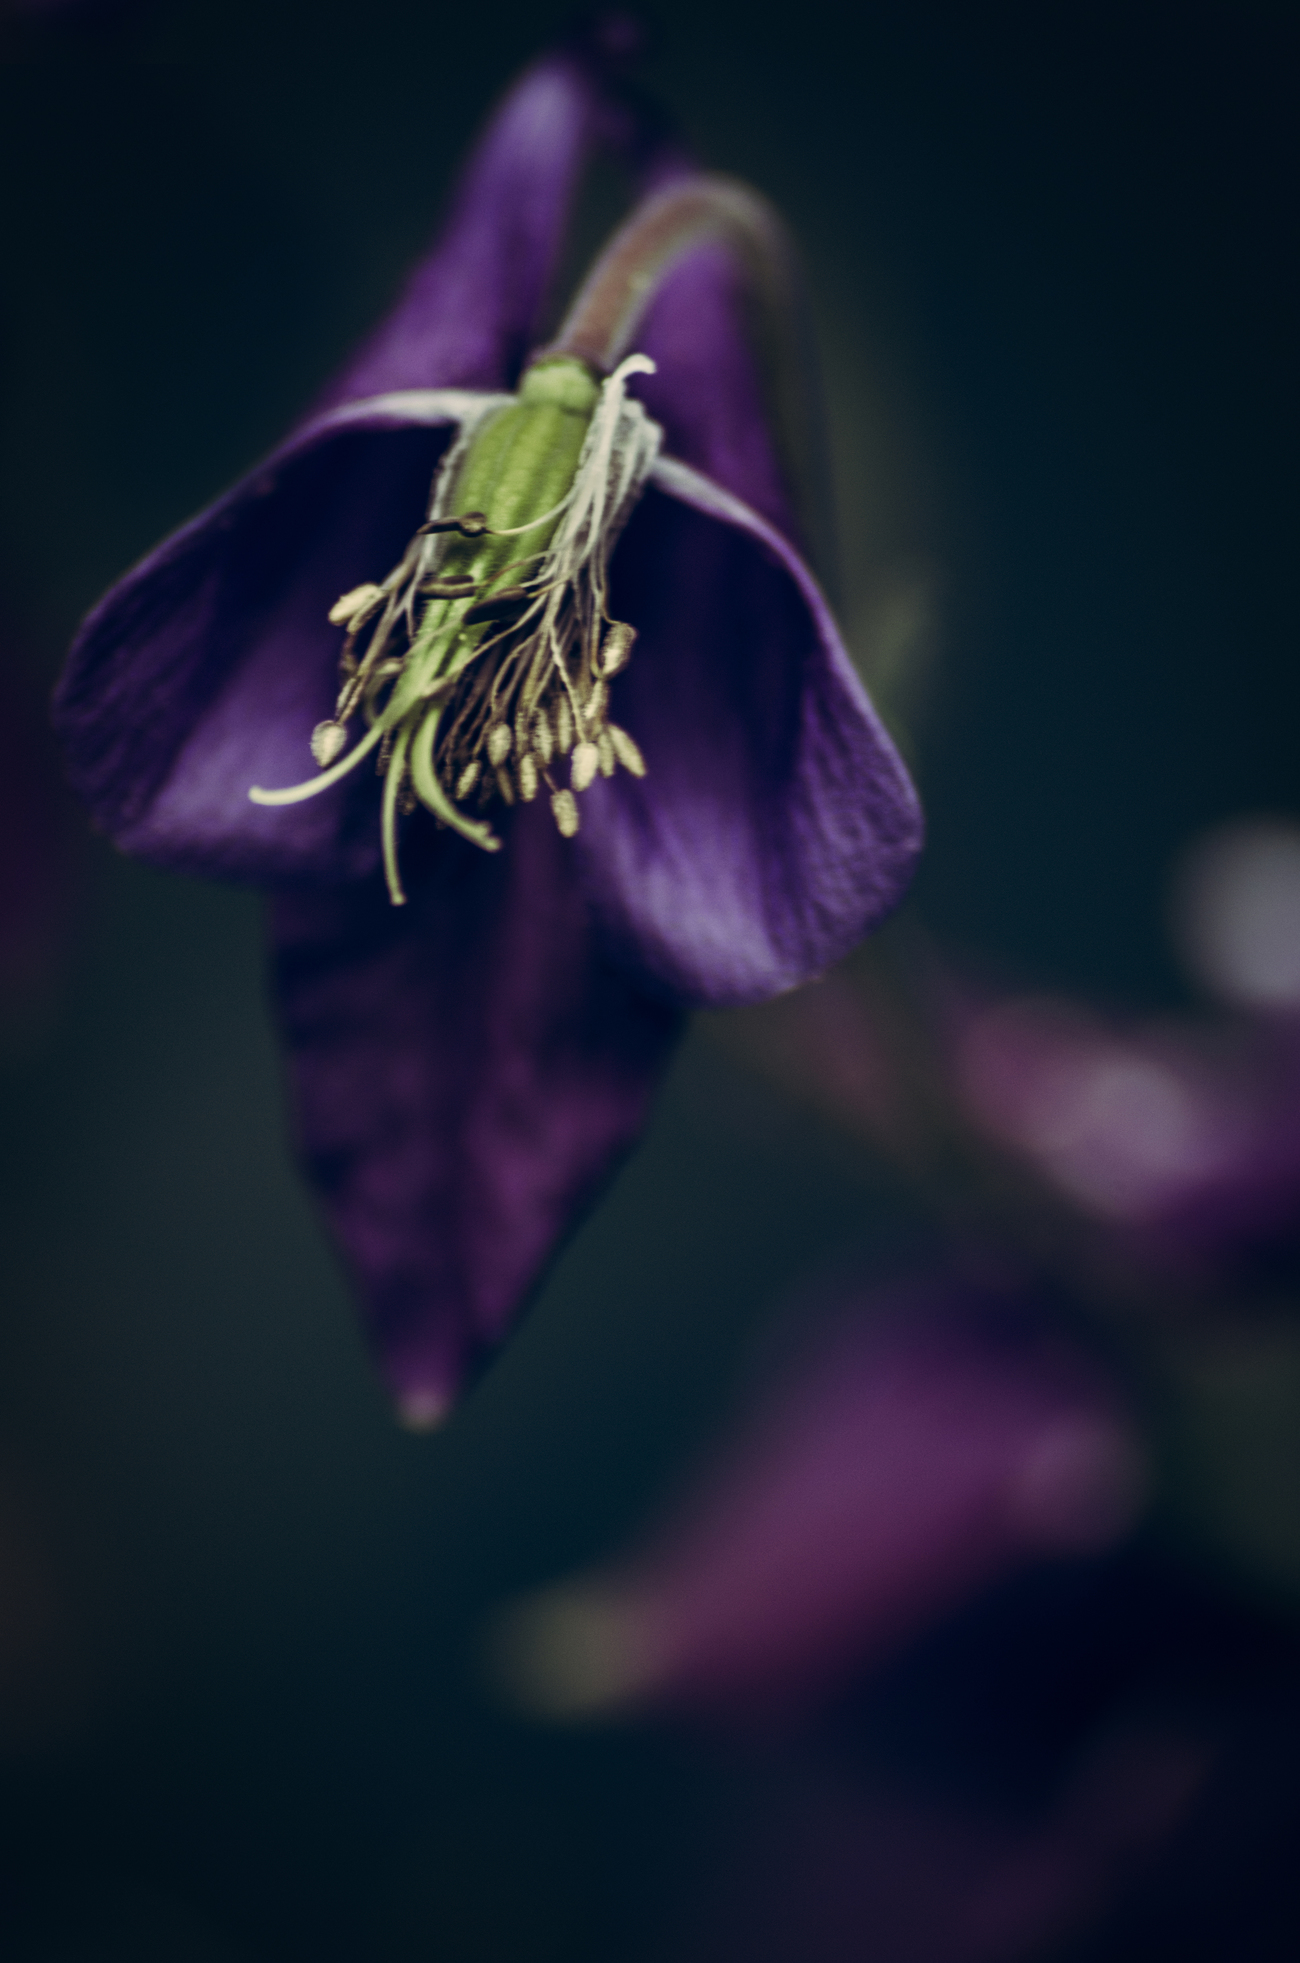 Another Gothic Flower ;)